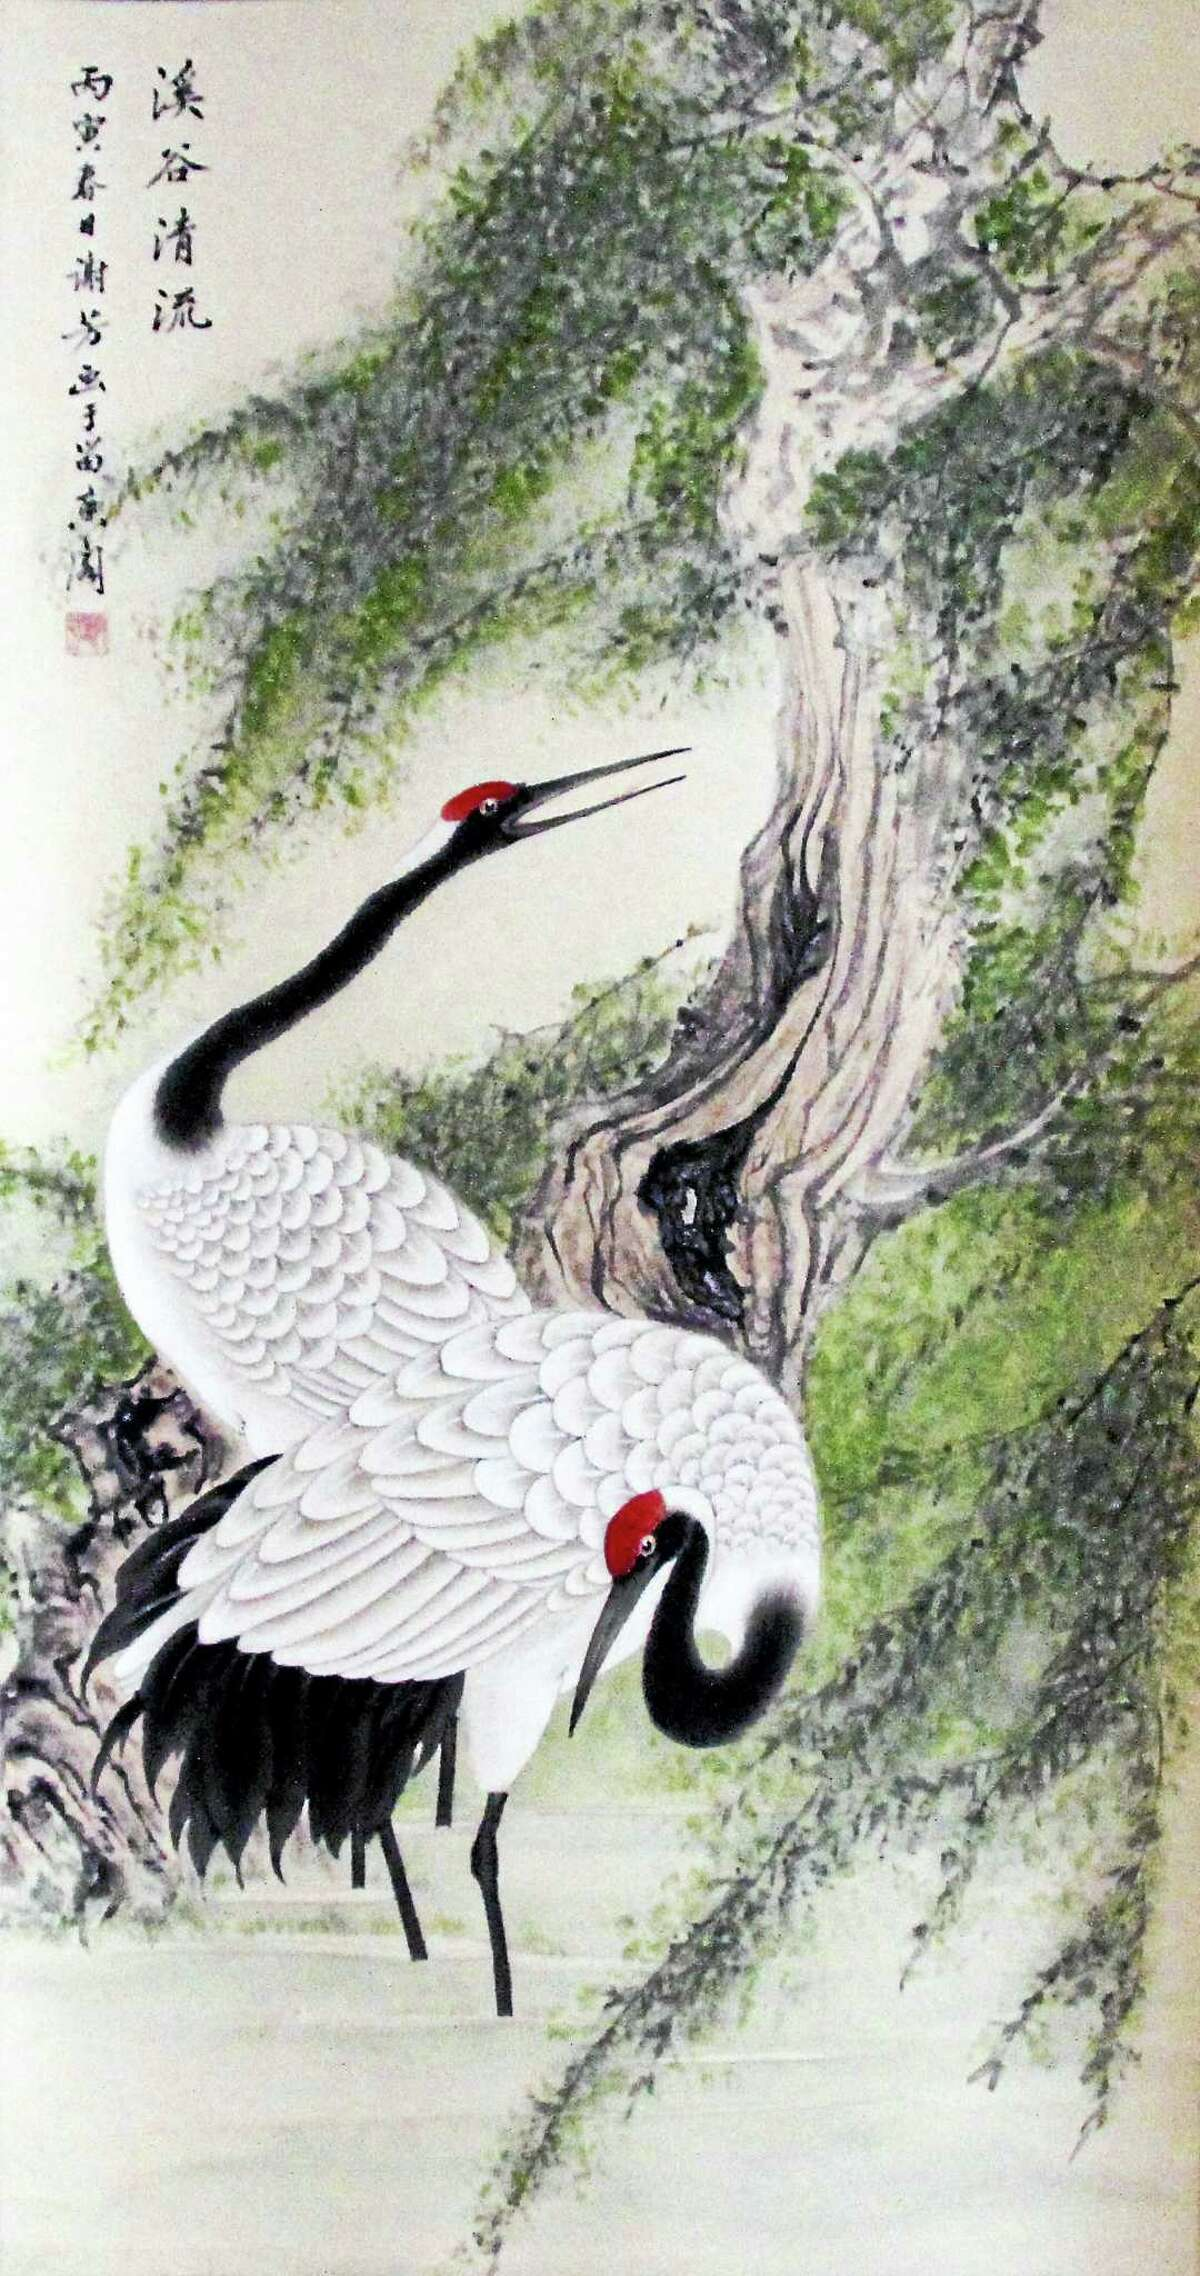 The Art Guild of Middletown is pleased to present a Chinese brush painting demonstration by Amy Fang Xie at 7:00 p.m. Thursday, October 13, at the Woodside Intermediate School, 30 Woodside Road, Cromwell, CT. Meetings of the Guild are free and open to the public; donations are accepted. The Art Guild's website is www.middletownartguild.org. For more information, you may contact the Art Guild at artguildofmiddletown@gmail.com.